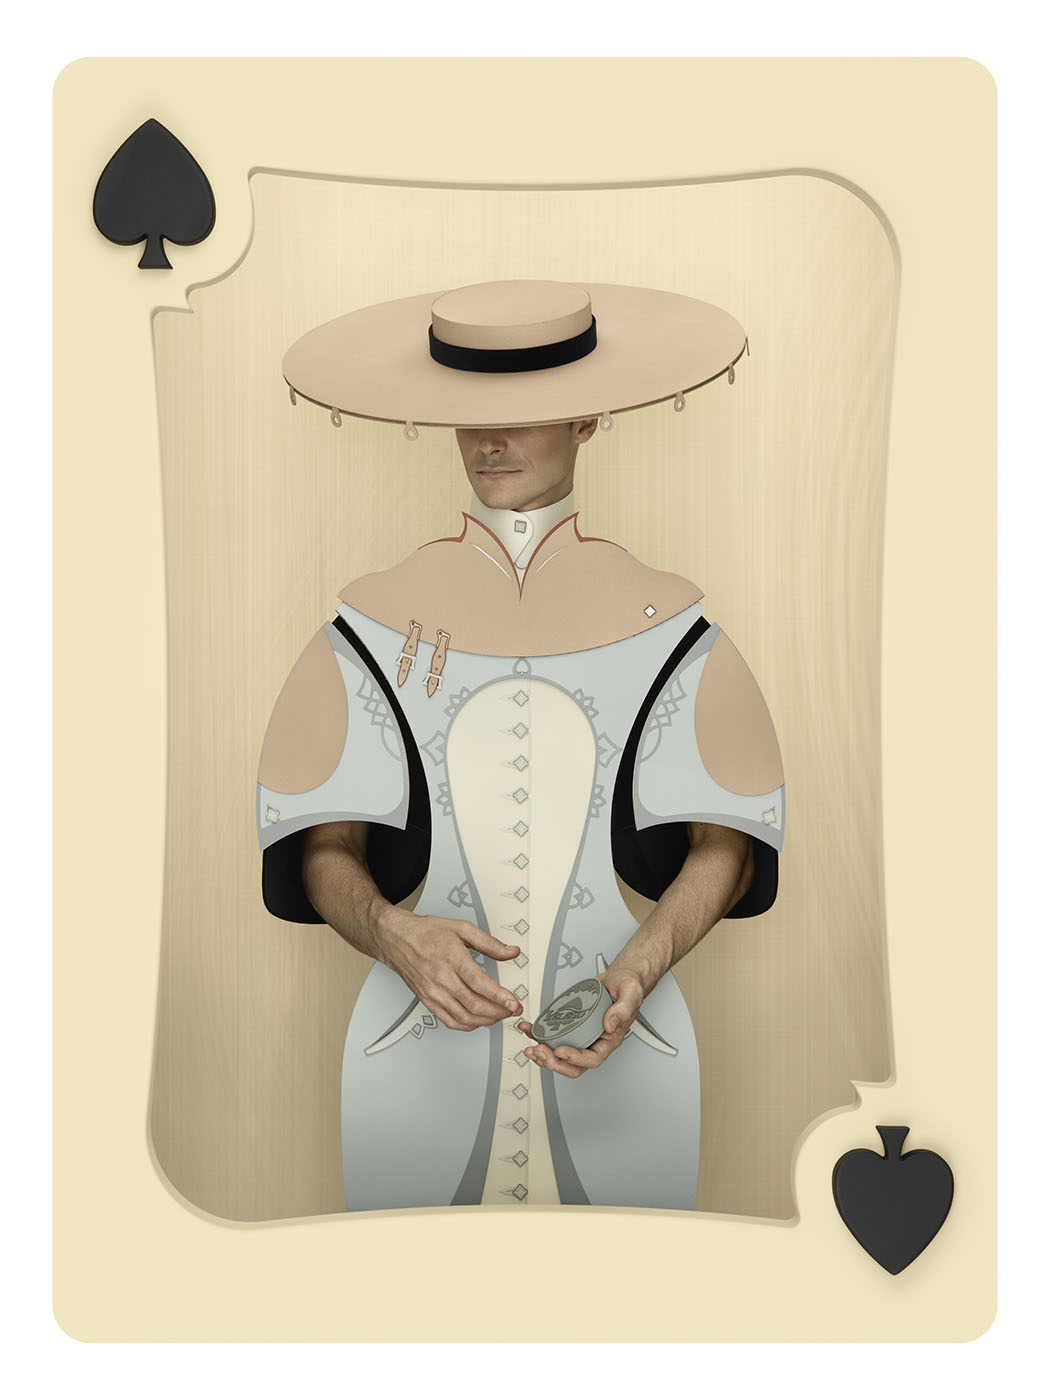 Christian Tagliavini Transforms Deck of Playing Cards into Life Sized Works of Art